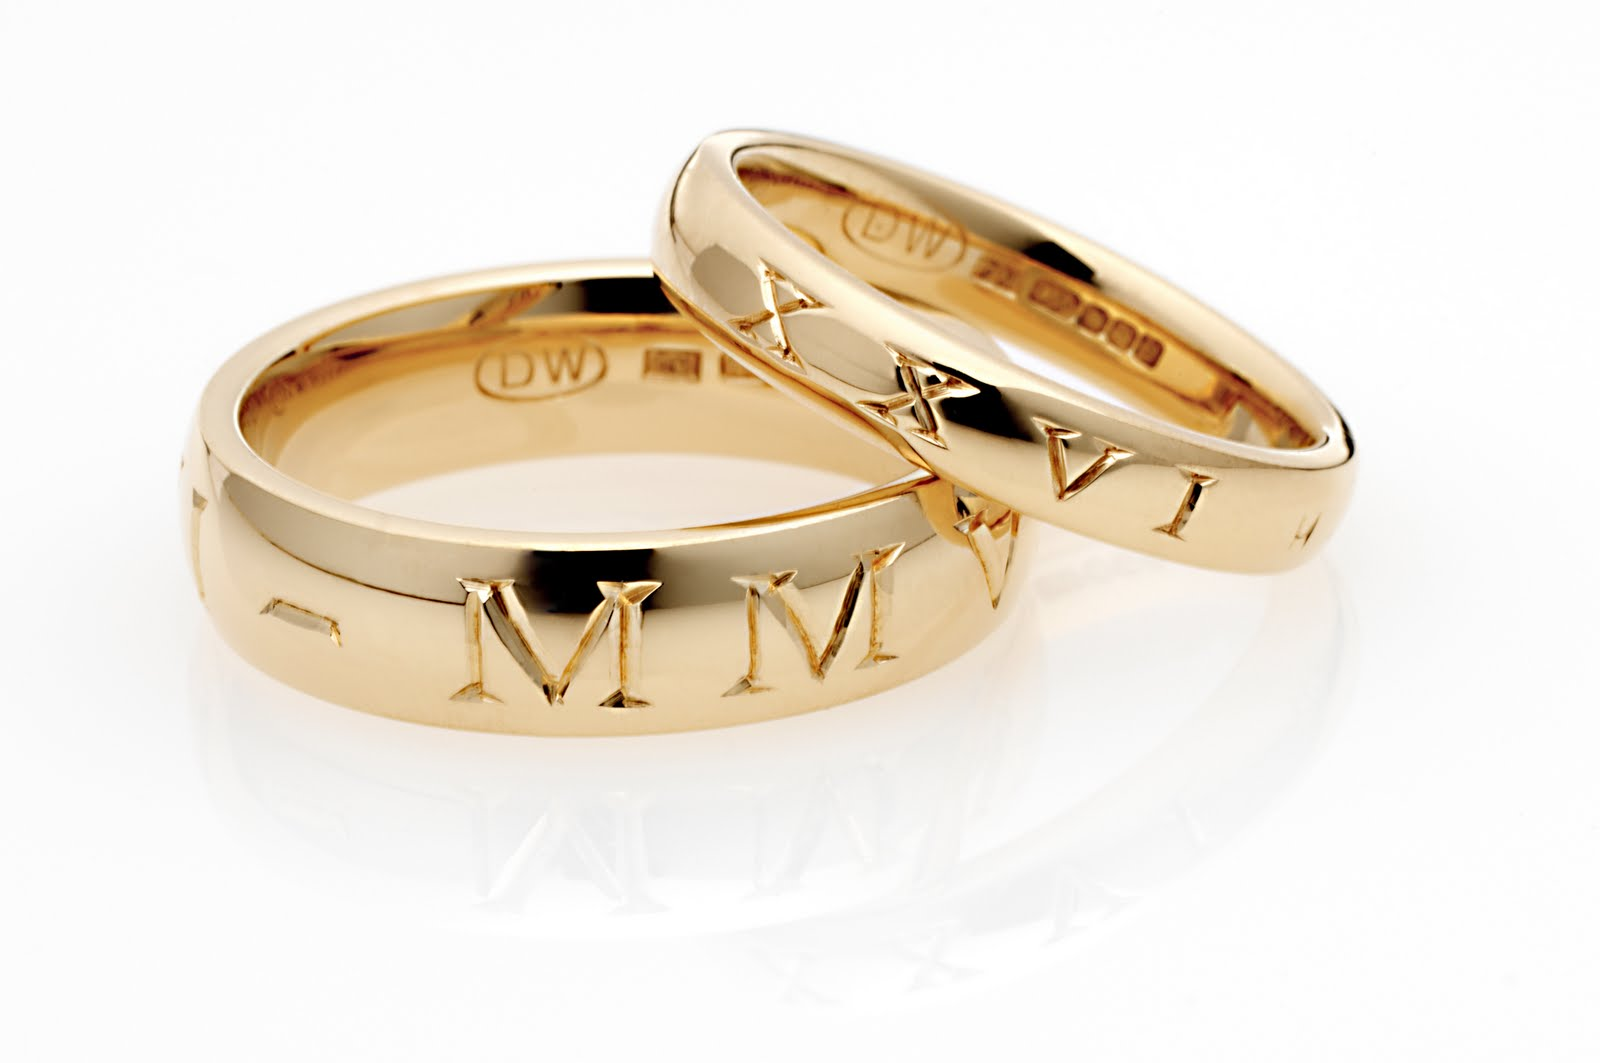 Engraved couples wedding rings